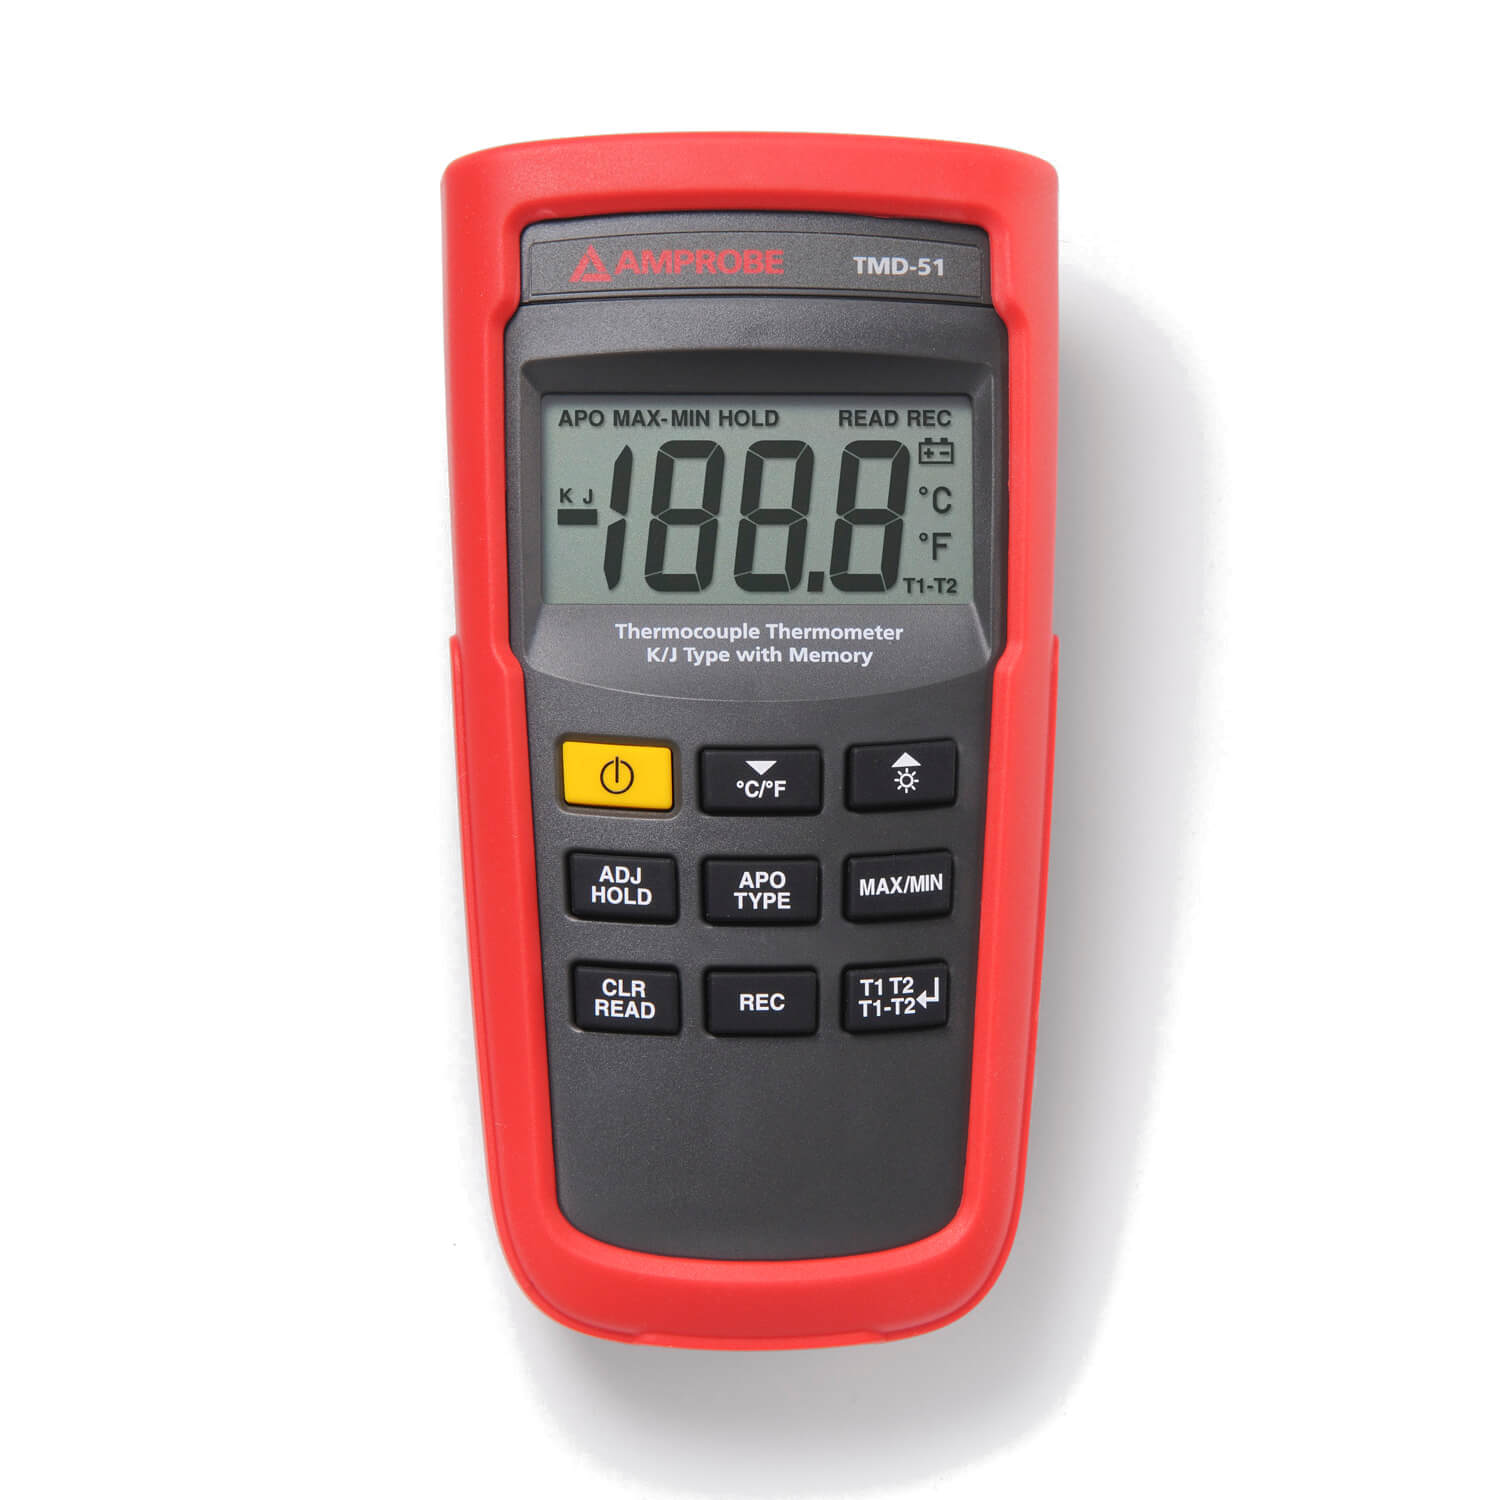 Amprobe TMD-51 Digital Handheld Thermocouple Thermometer